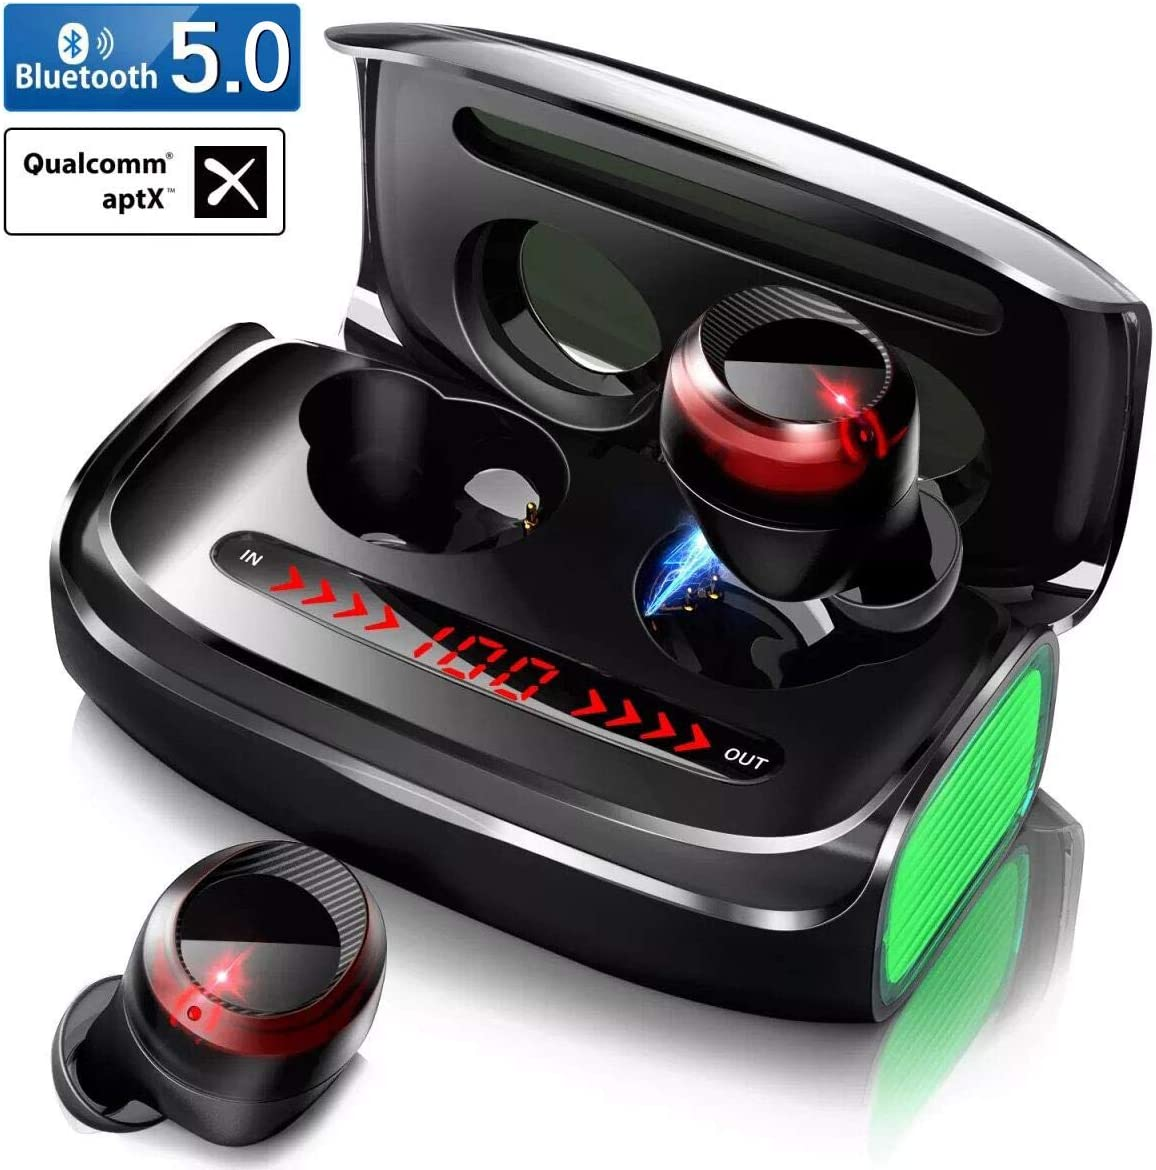 Wireless Earbuds, GRDE TWS Bluetooth 5.0 Headphones with 3000 mAh Charging Case Deep Bass 170H Playtime CVC 8.0 Noise Canceling LED Display in-Ear Earphones Bluetooth Earbuds Built-in Mic Headset